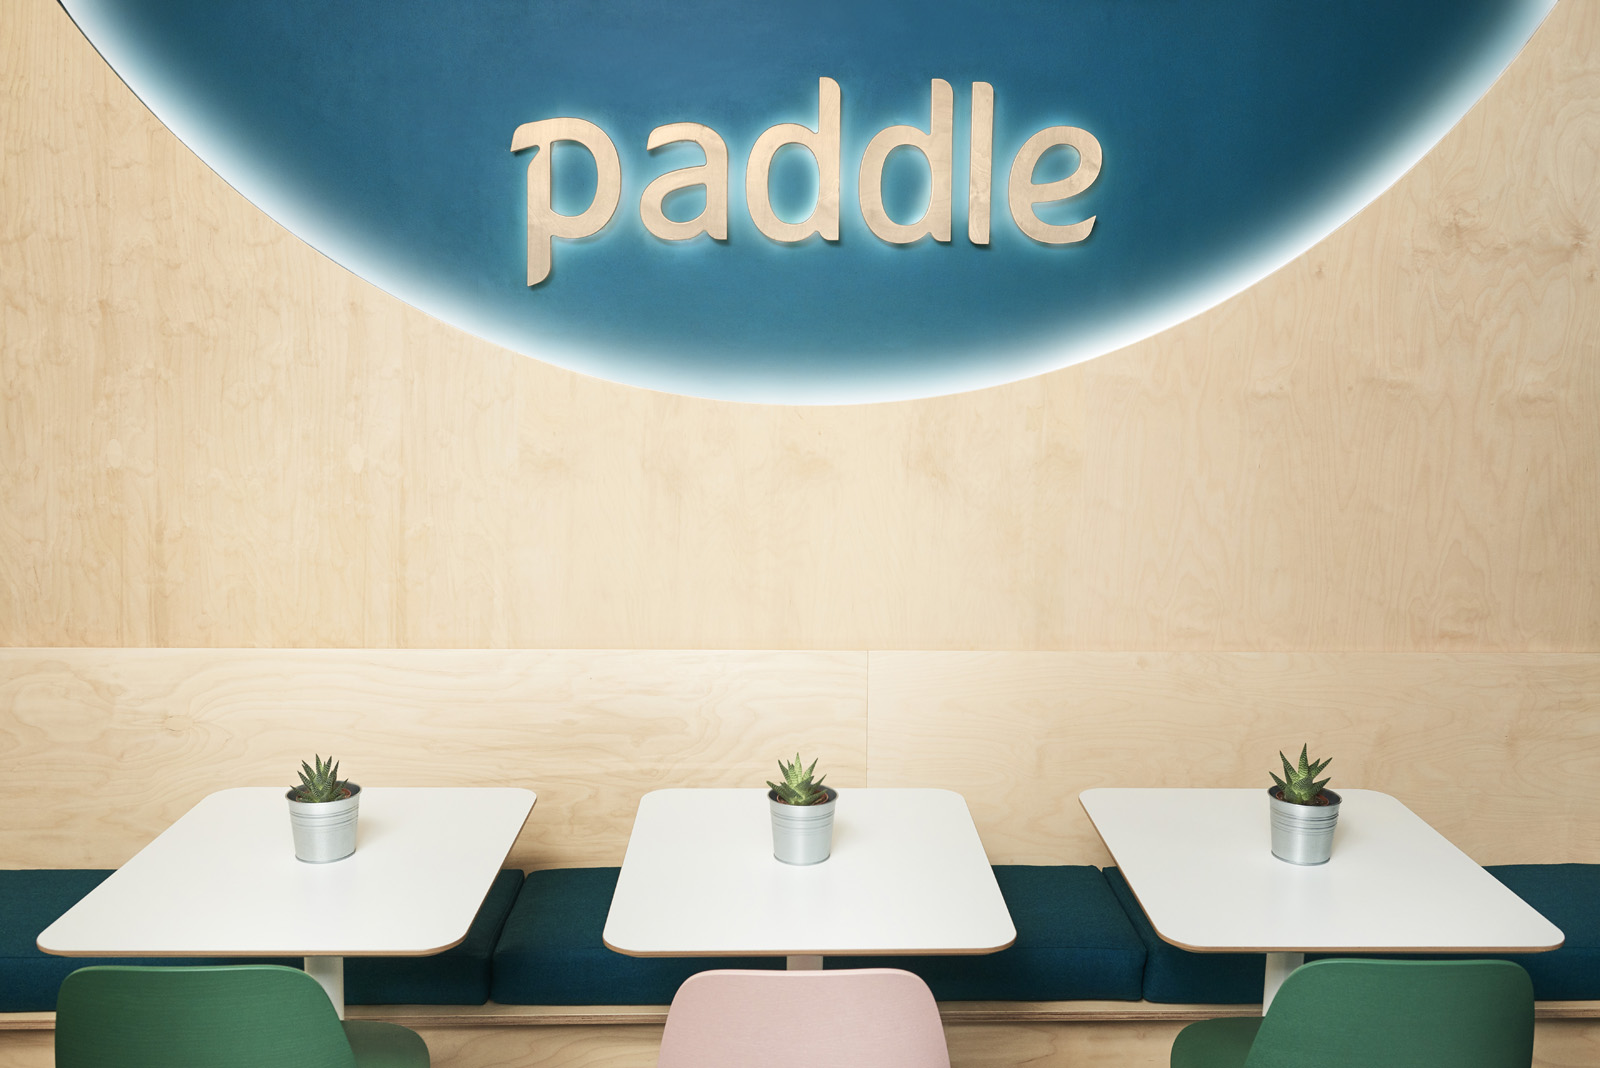 Projects_Office_PADDLE_SIGN.jpg